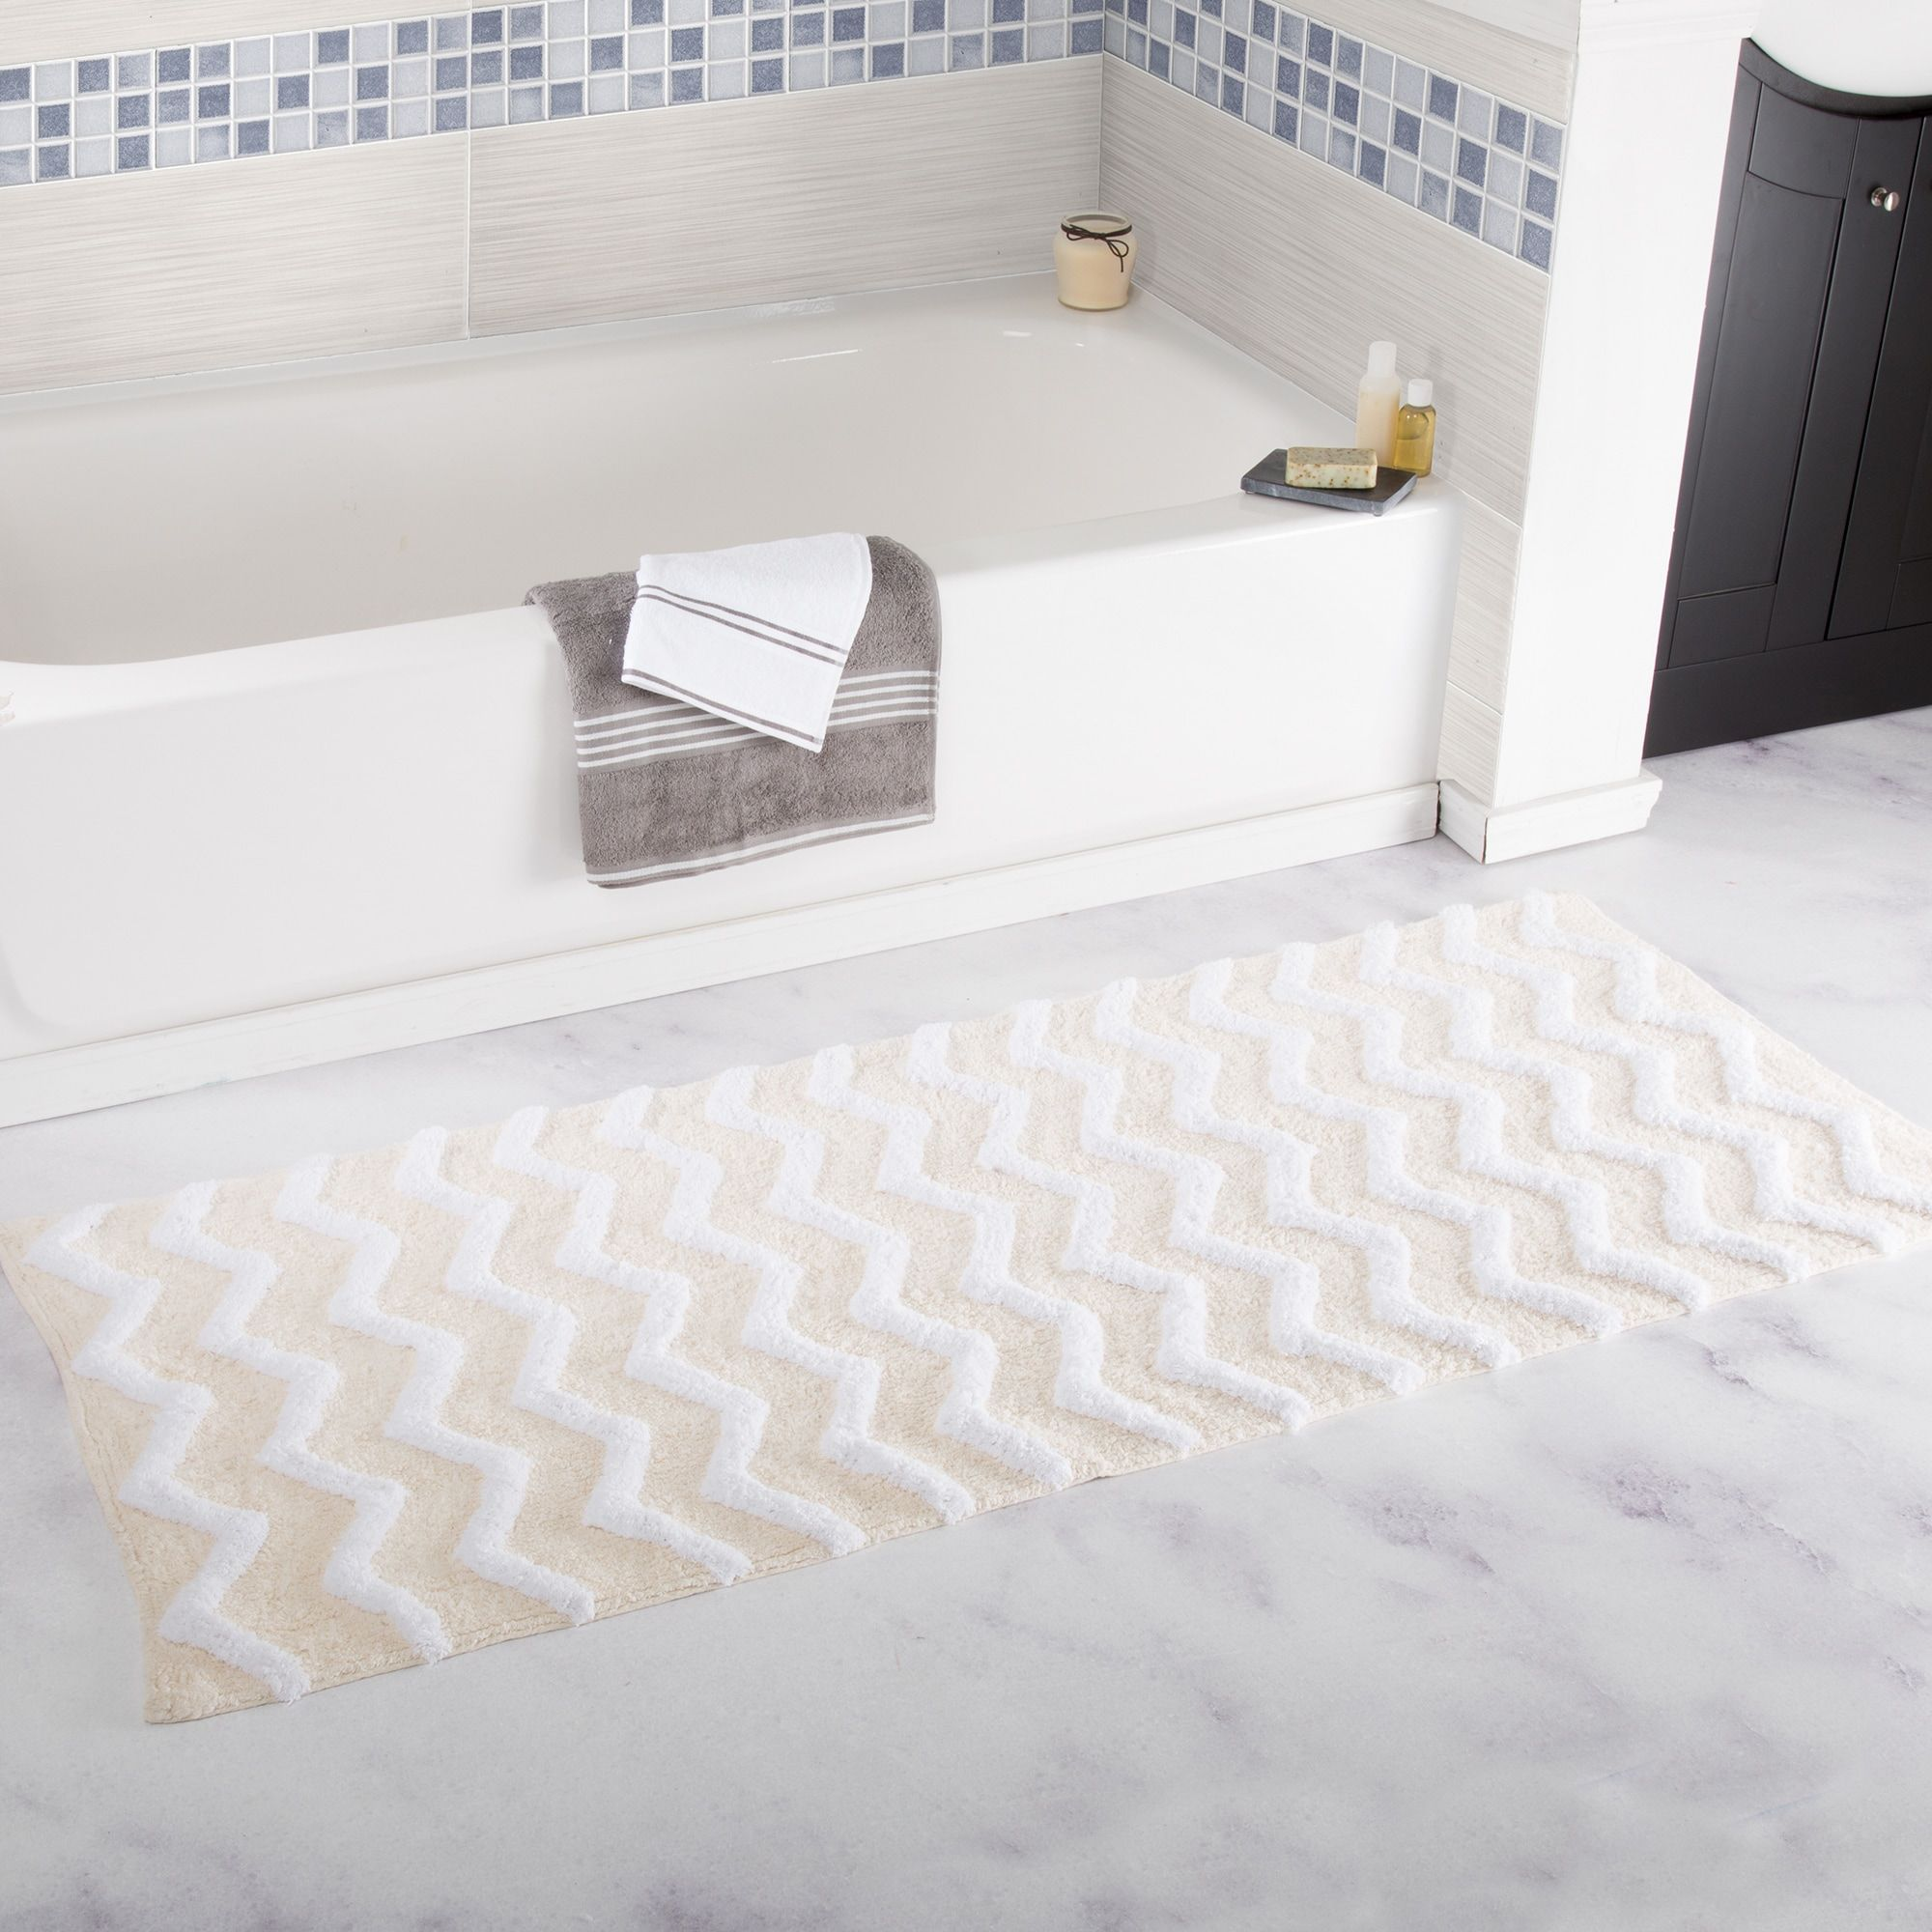 Windsor Home 24 X 60 Inch 100 Cotton Chevron Bathroom Mat In